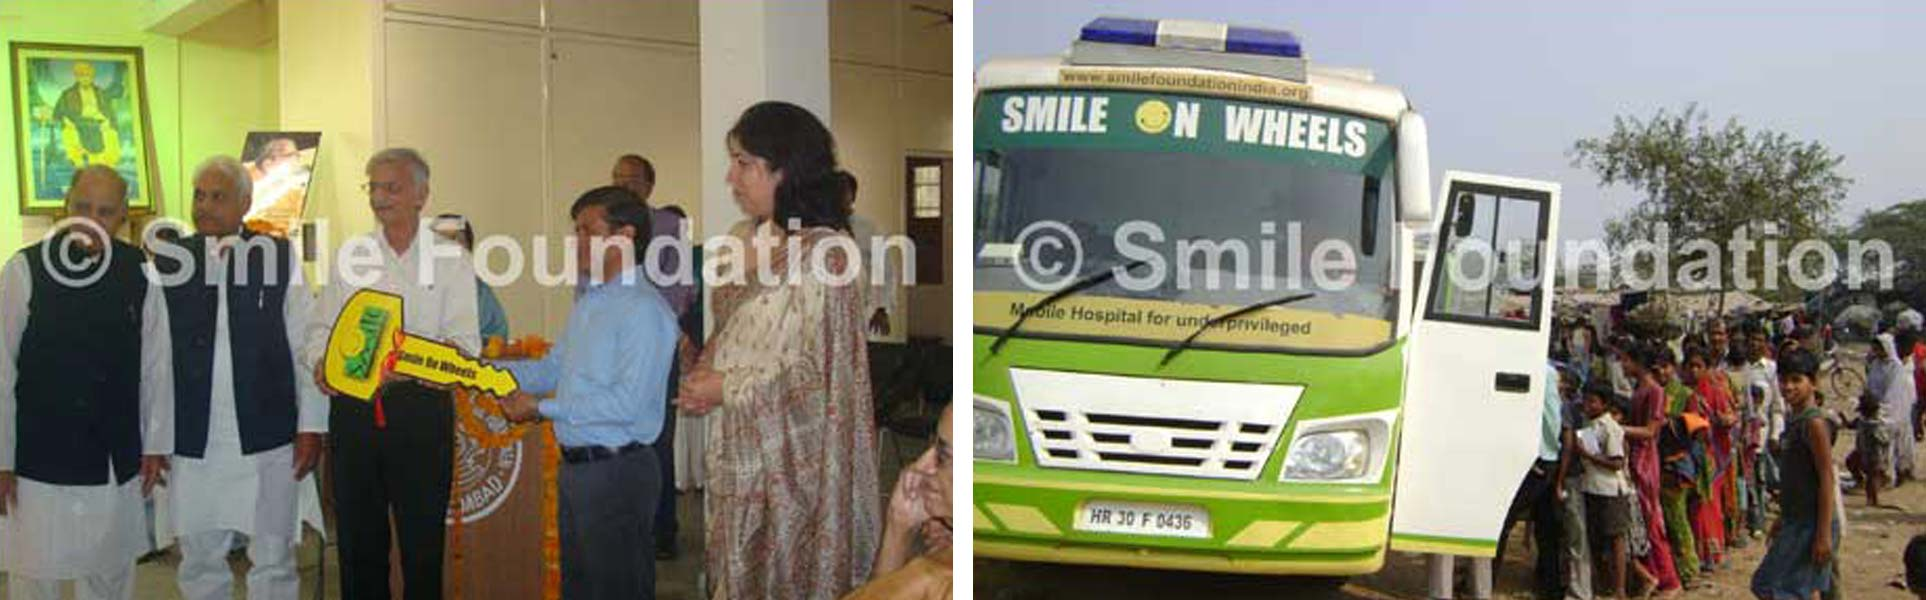 Smile launches 12th mobile hospital